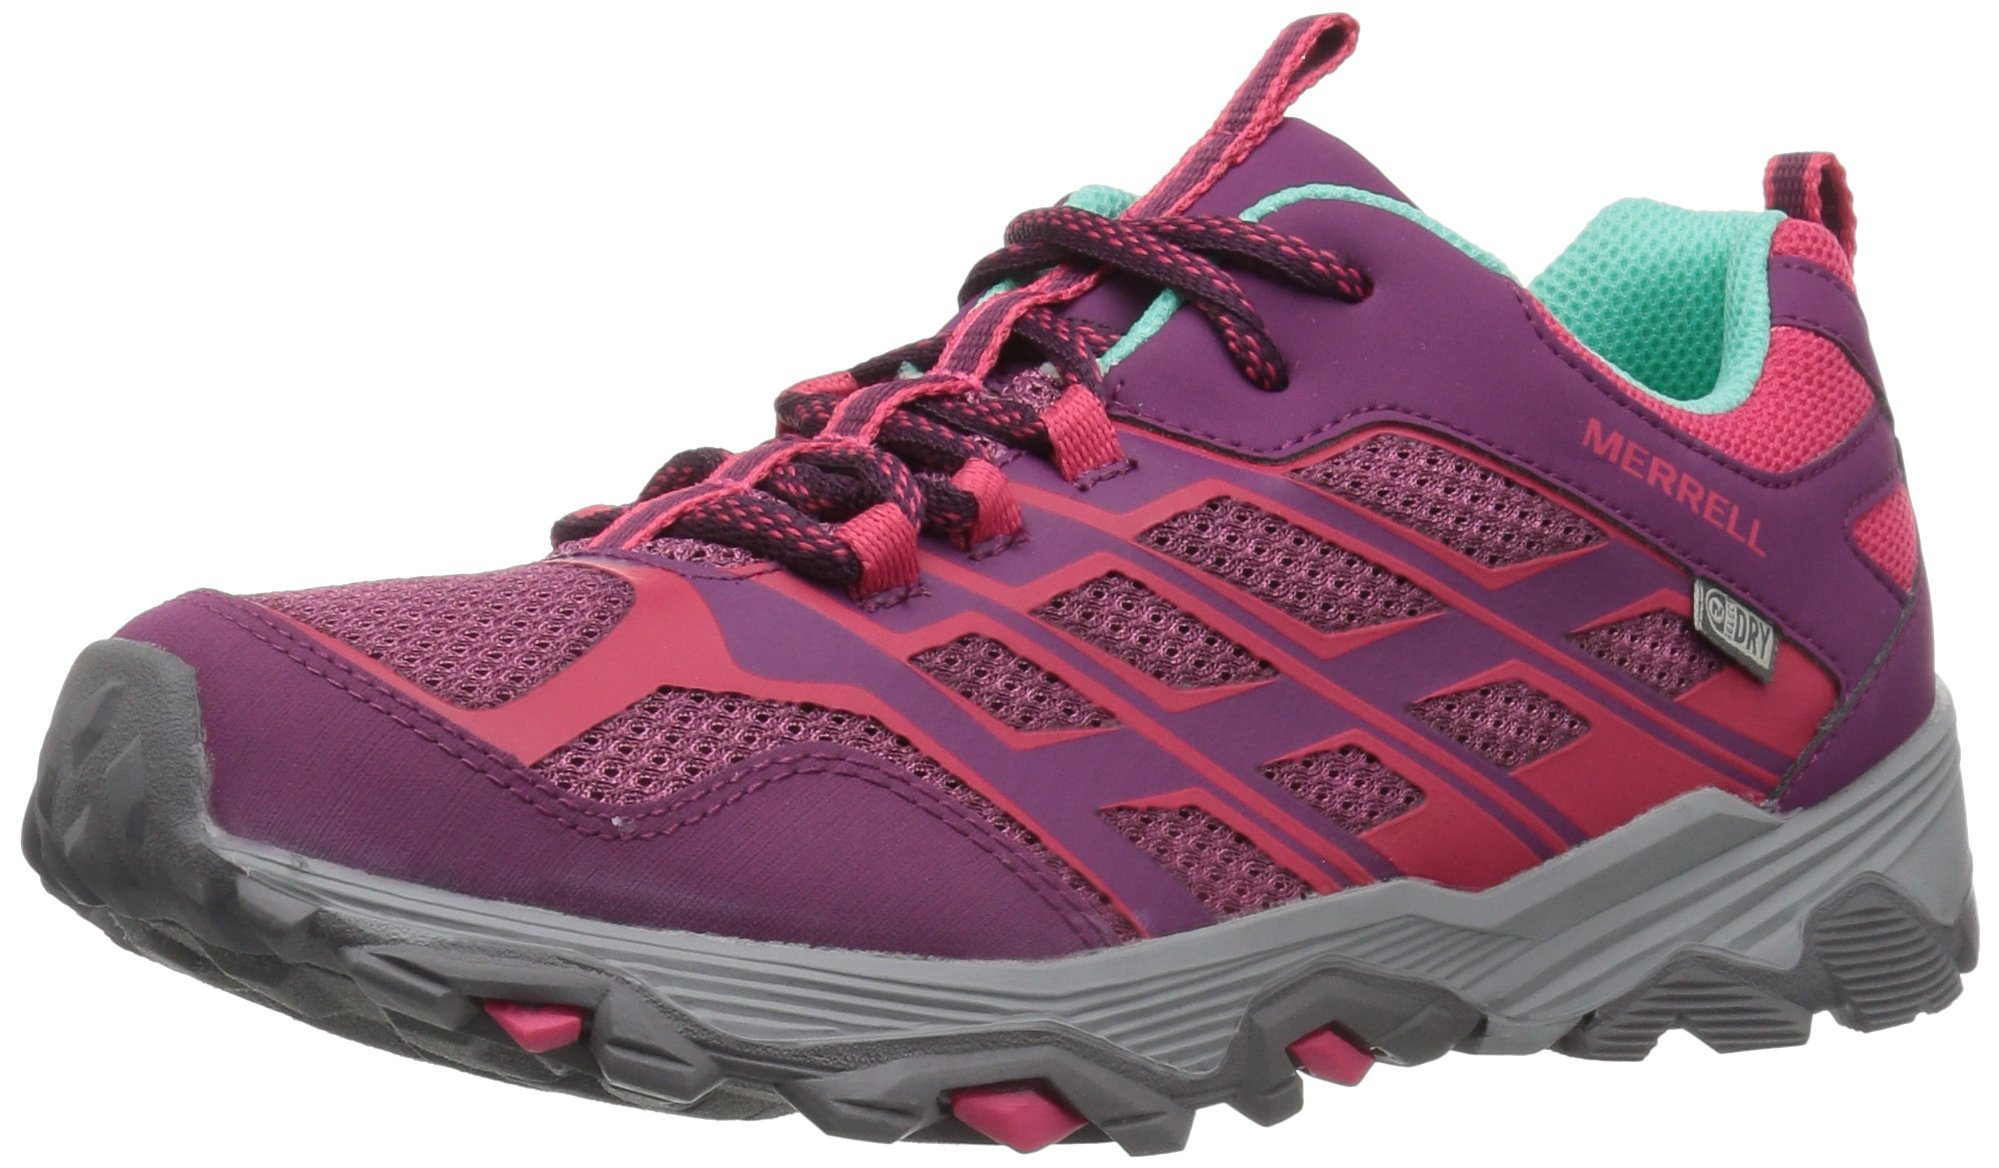 Merrell Moab Fst Low Waterproof Sneaker (Little Kid/Big Kid), Berry, 7 Medium US Big Kid